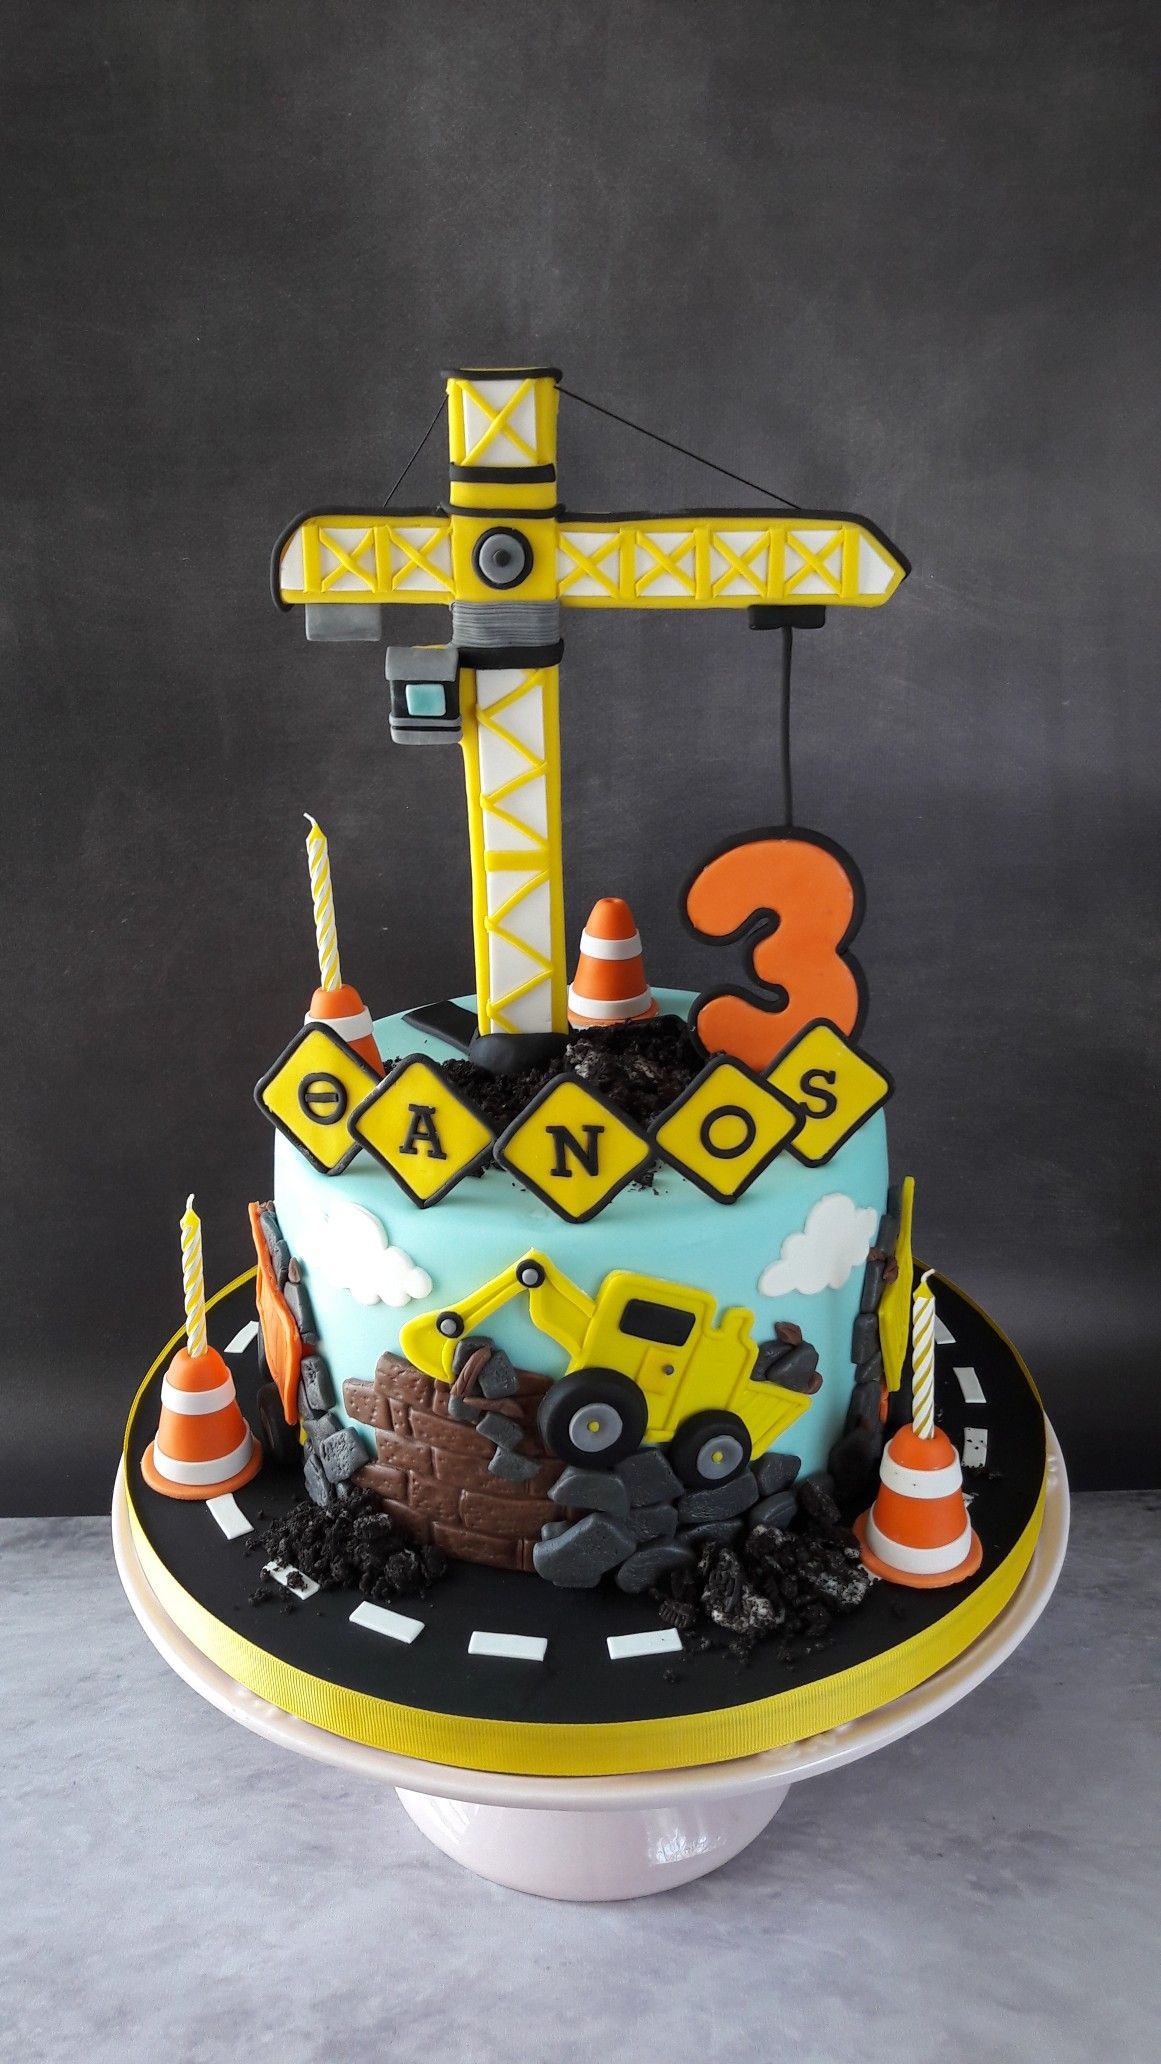 Swell Construction Site Cake With A Big Crane For Little Thanos 3Rd Personalised Birthday Cards Beptaeletsinfo